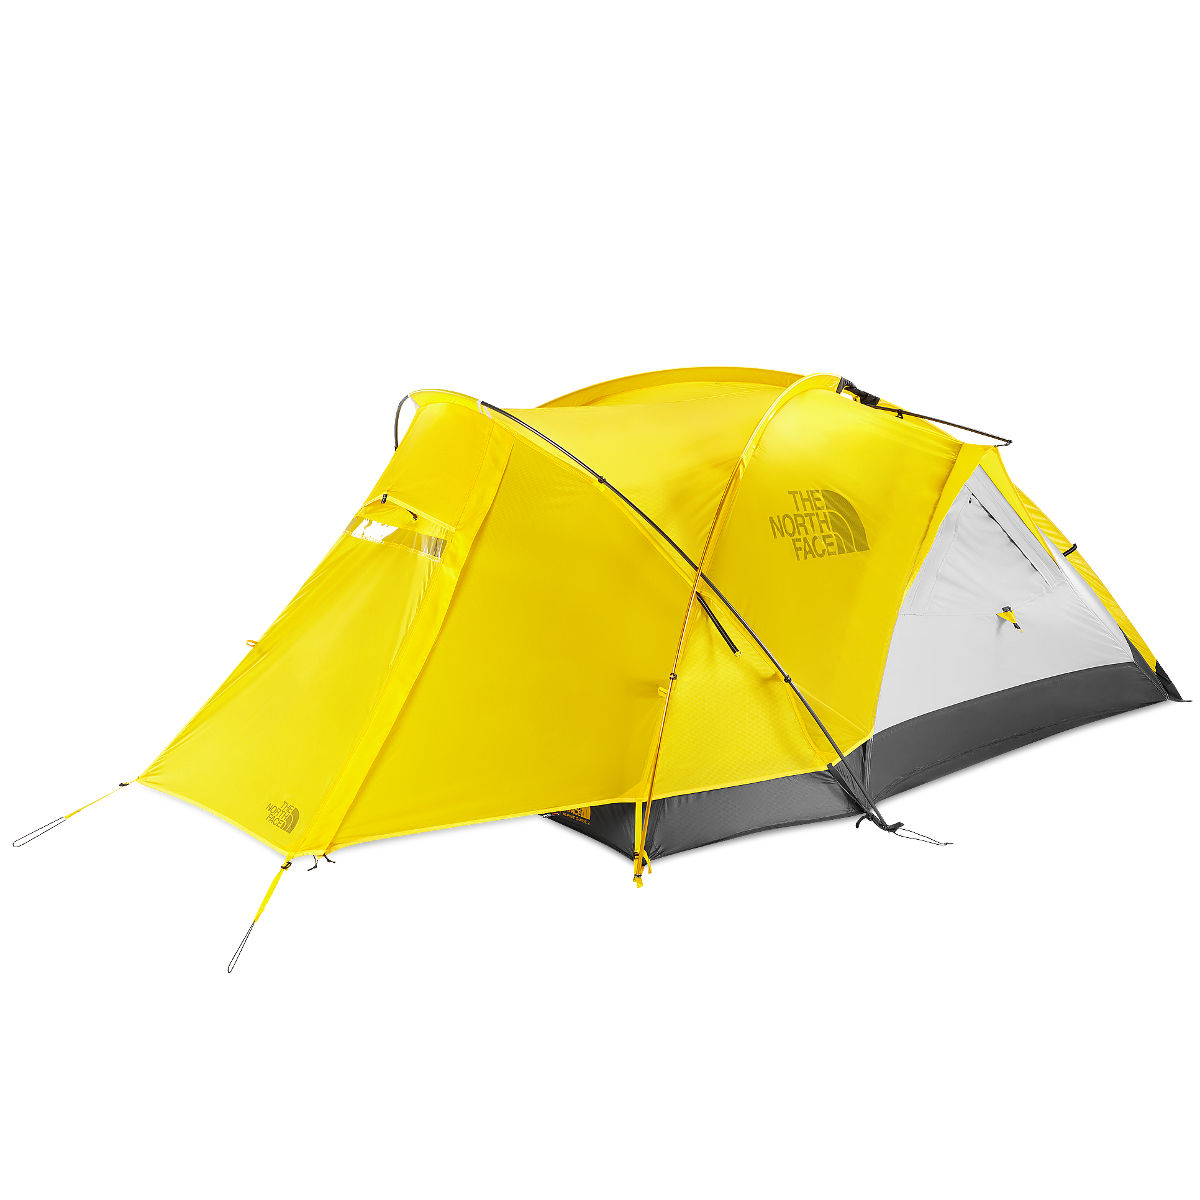 photo: The North Face Alpine Guide 2 four-season tent